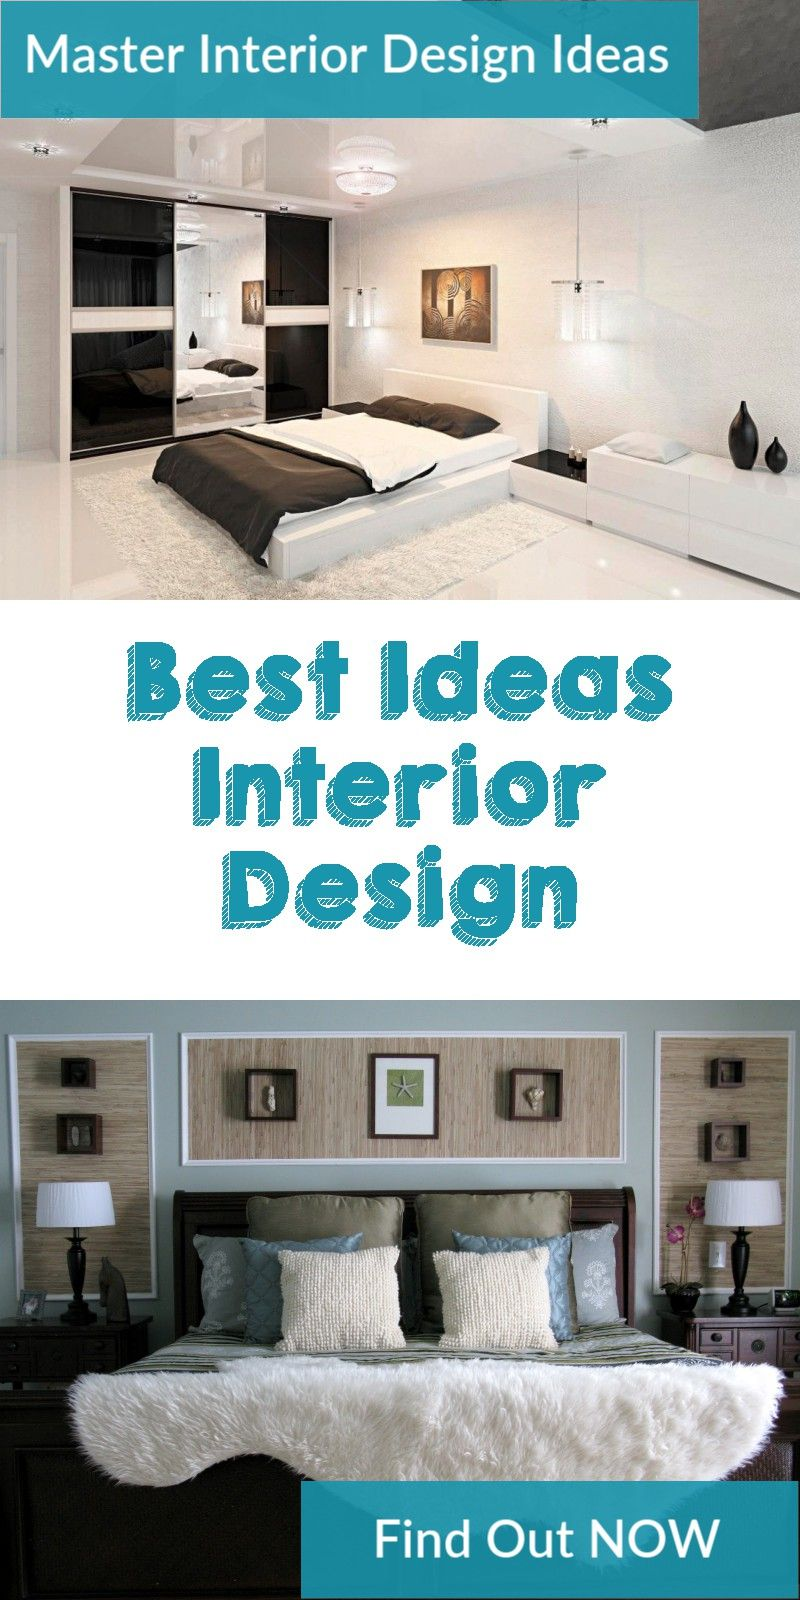 Interior design tips on how to do some designing view further for this article visit the image link homedecor homedecorideas home also rh pinterest